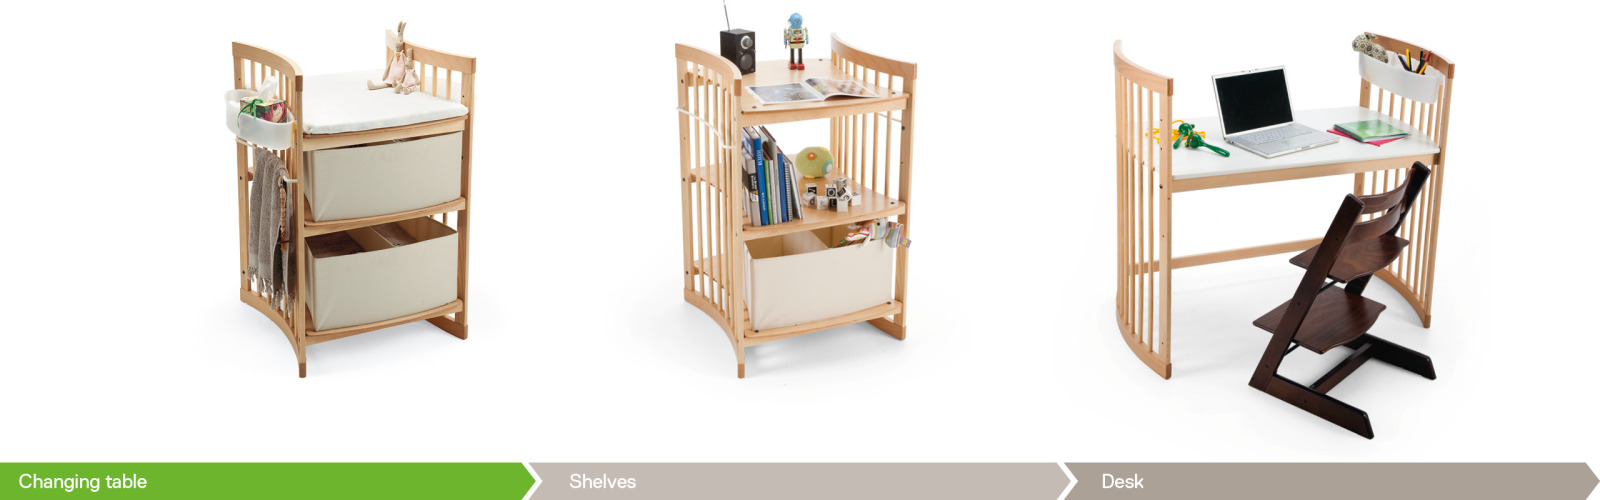 Stokke Care Gow chain